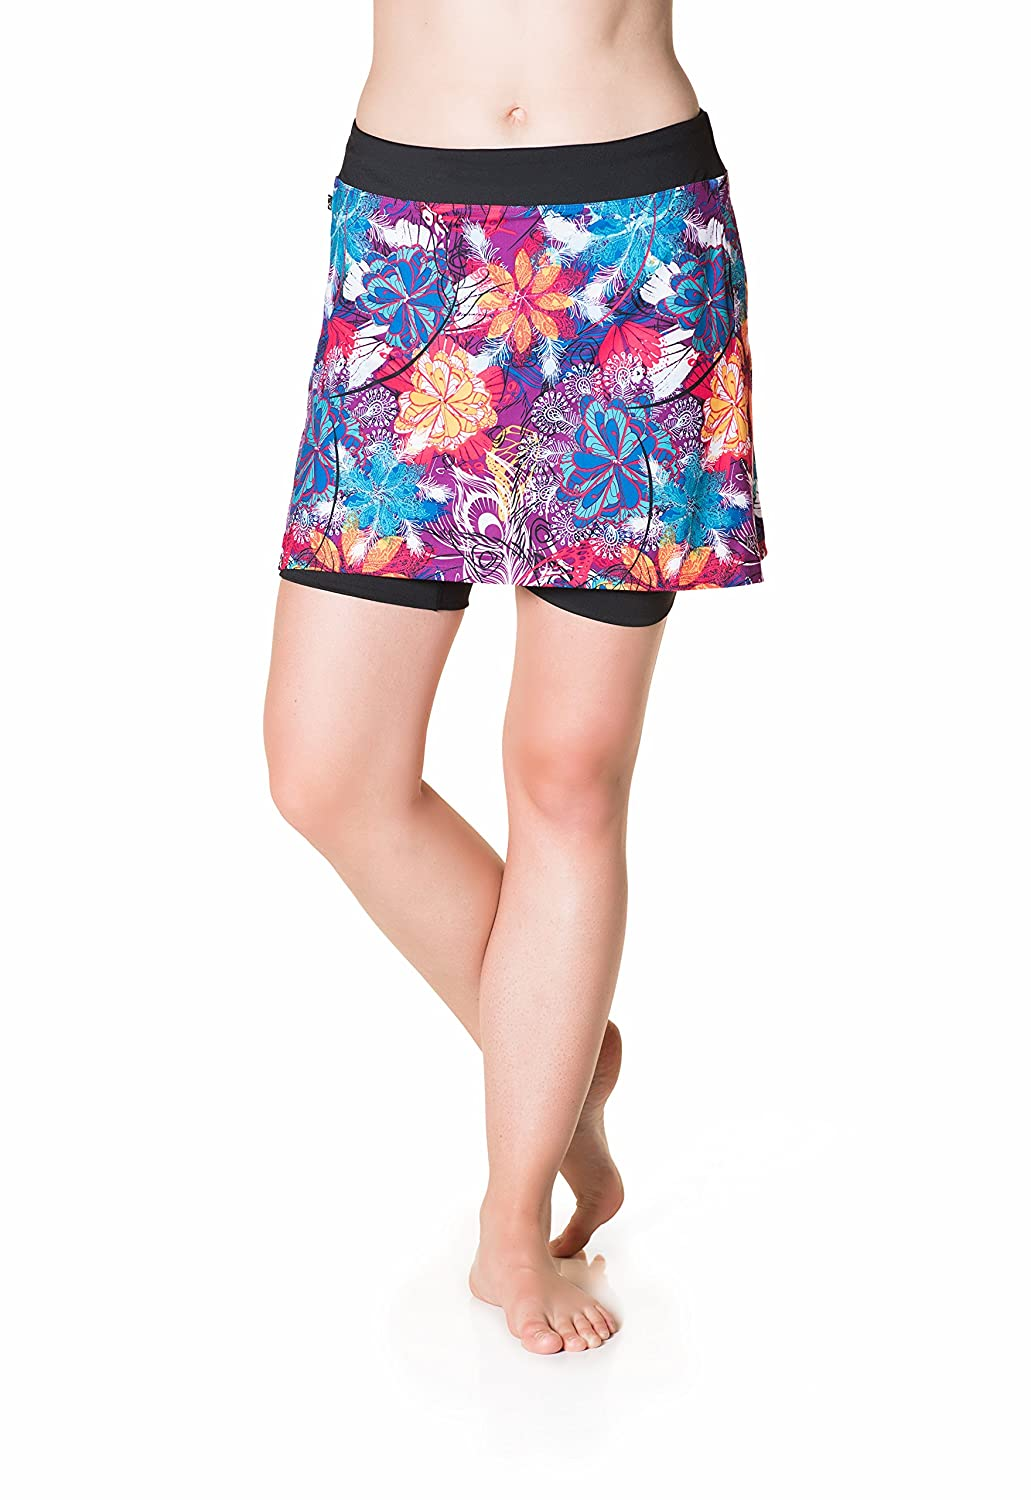 Skirt Sports Womens Cruiser Bike Girl Skirt SkirtSports Inc. 2021-P